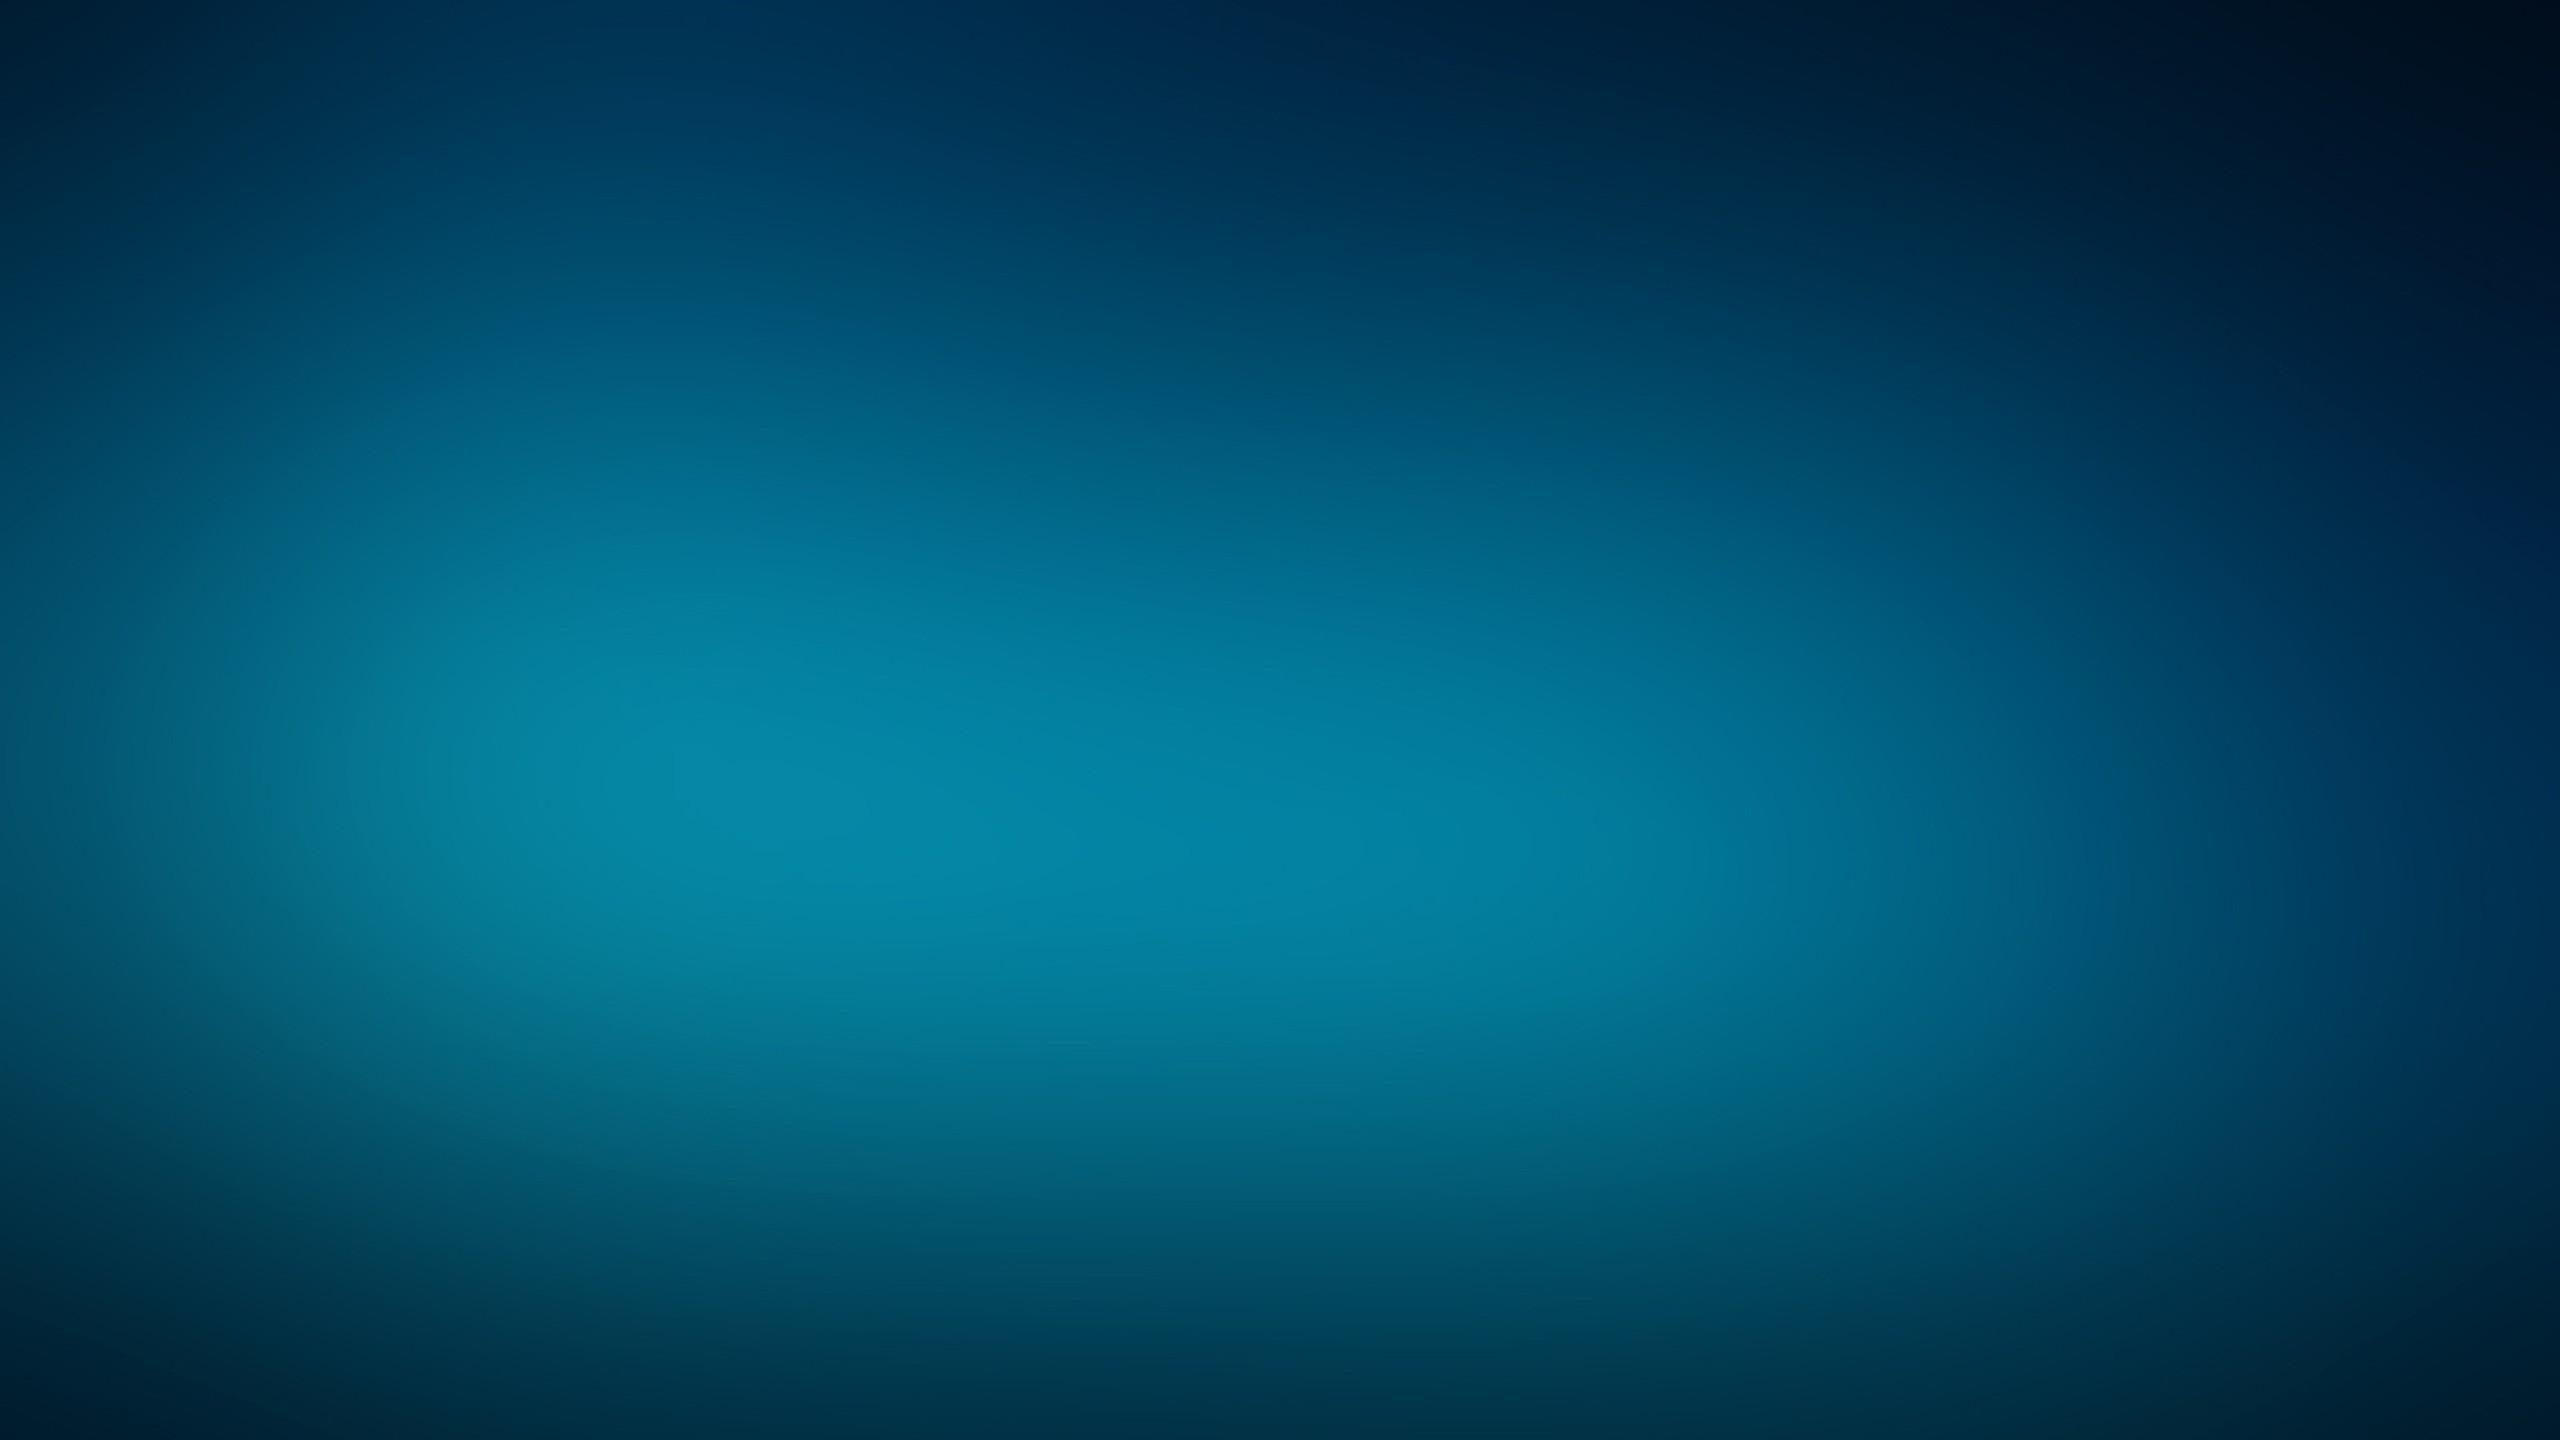 Gradient Blue HD Wallpapers Desktop Backgrounds Mobile 2560x1440